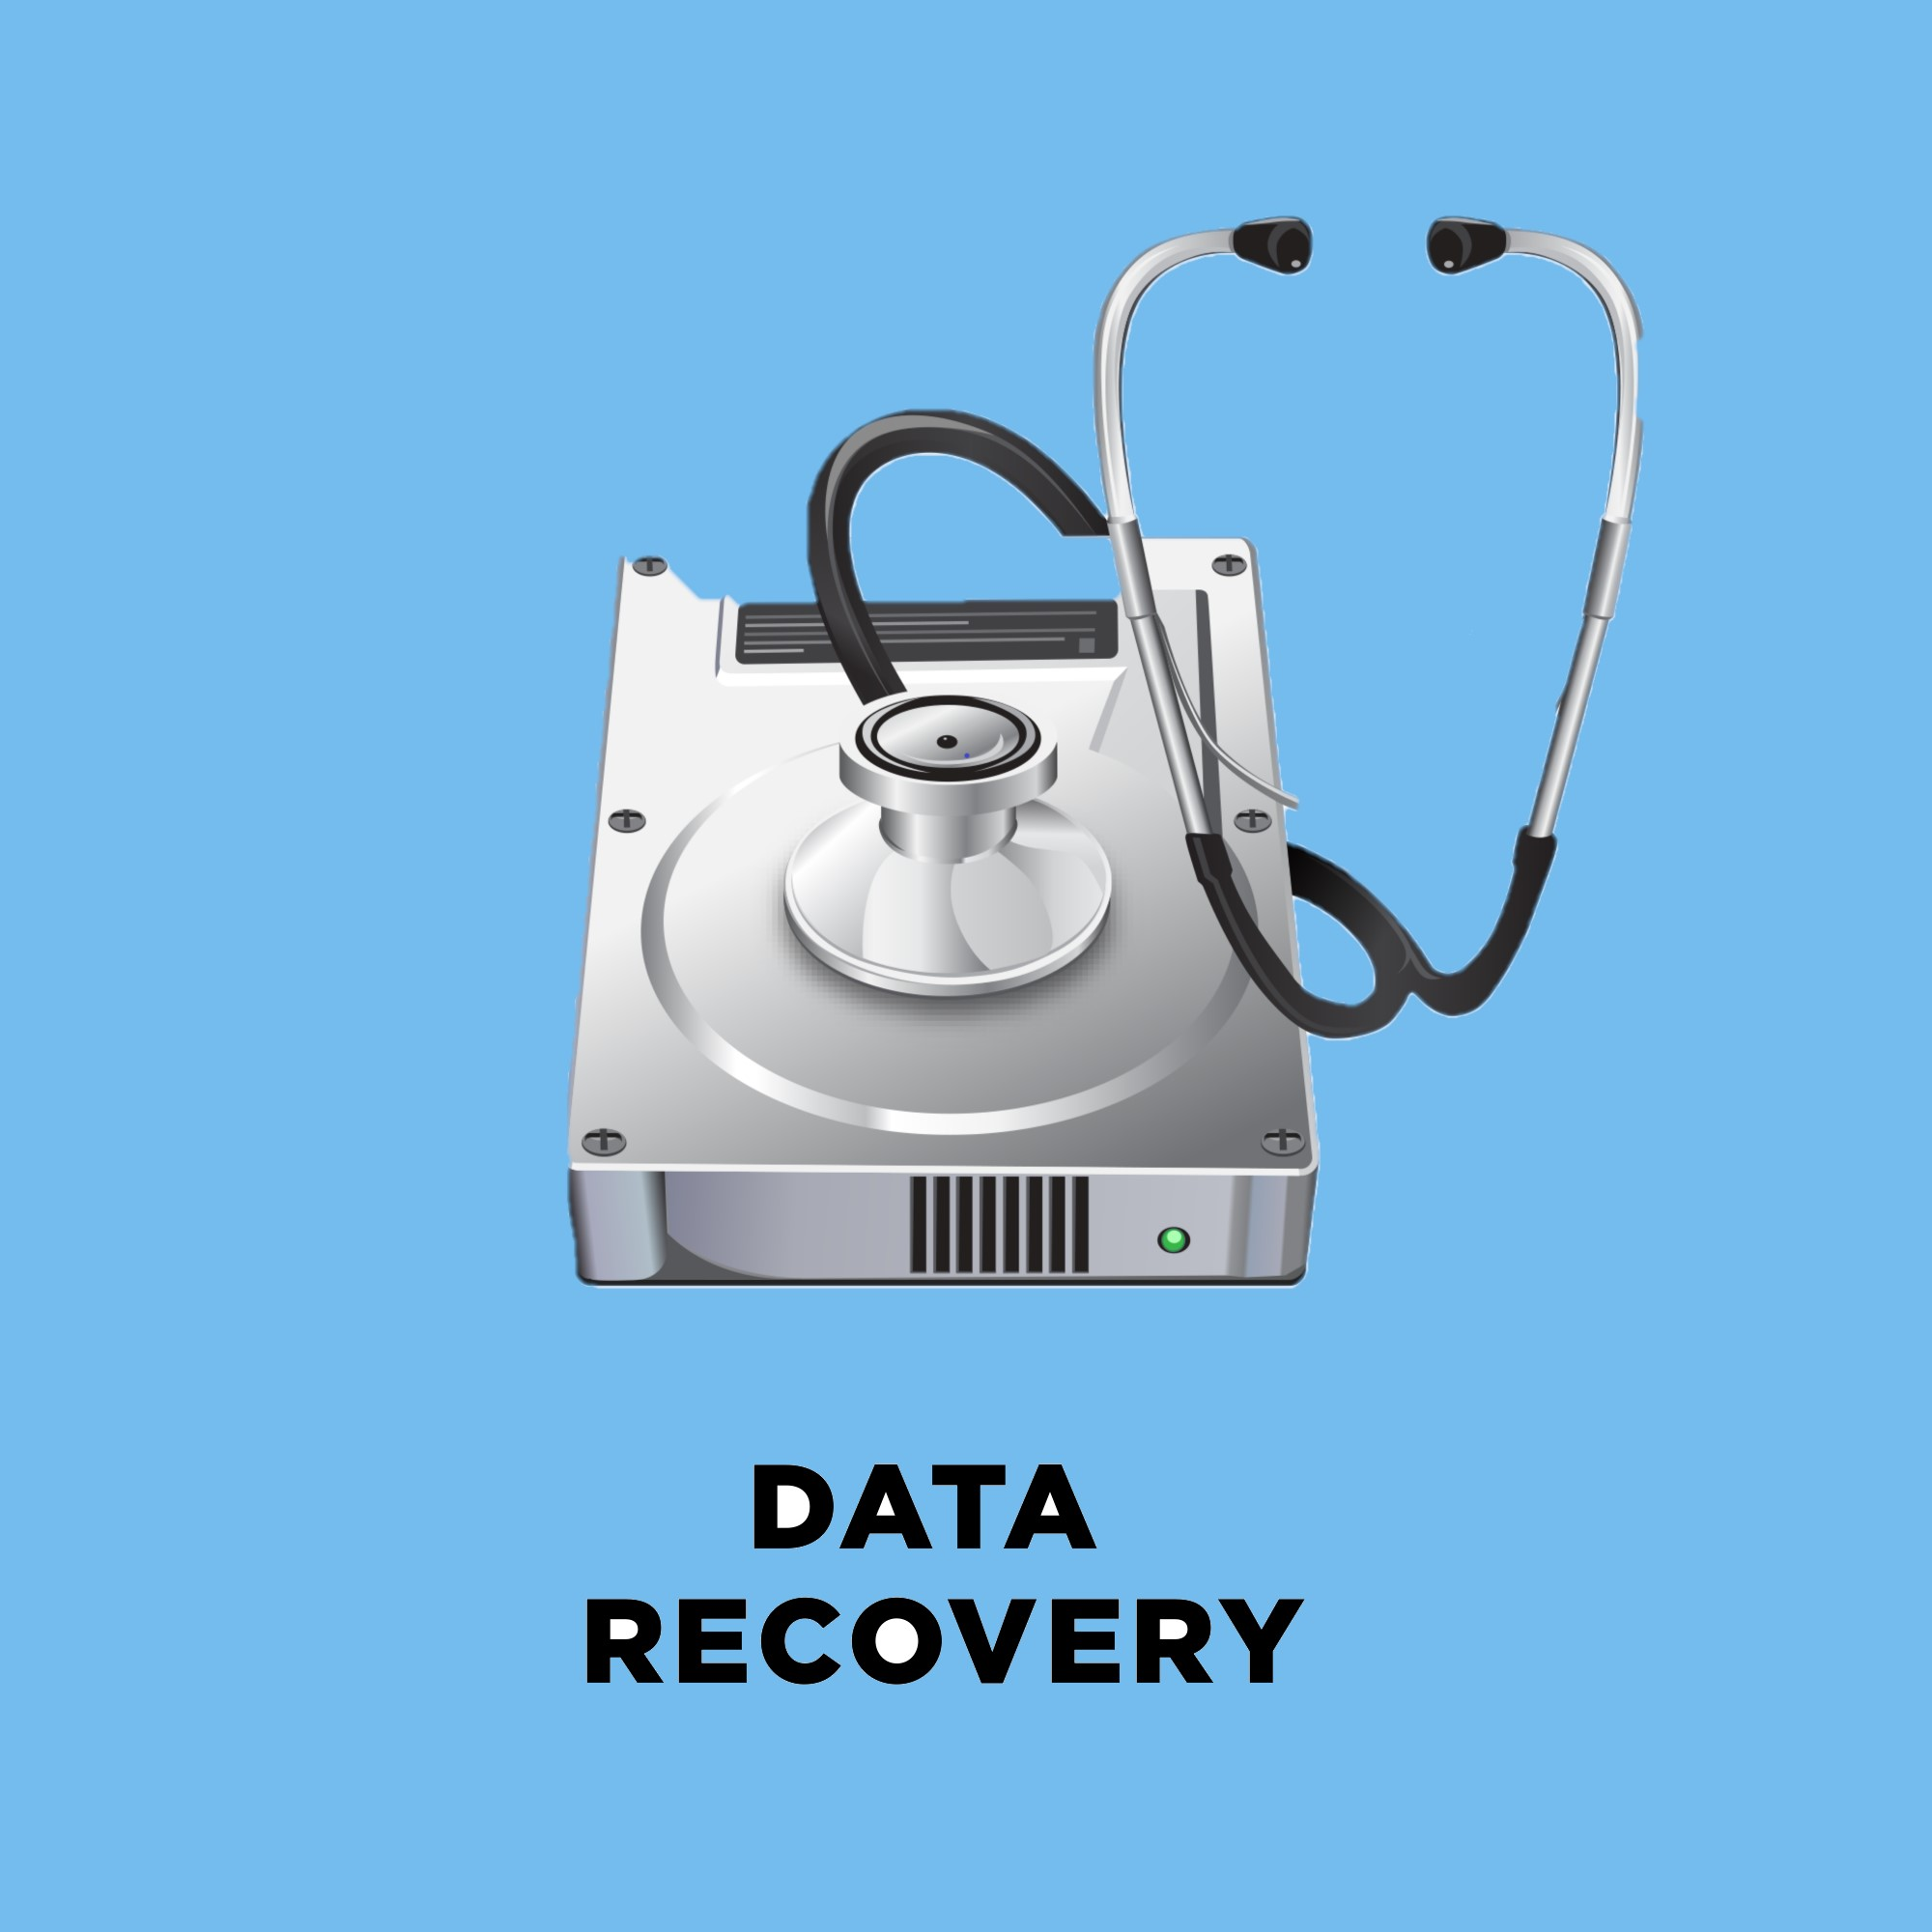 data recovery with light blue background